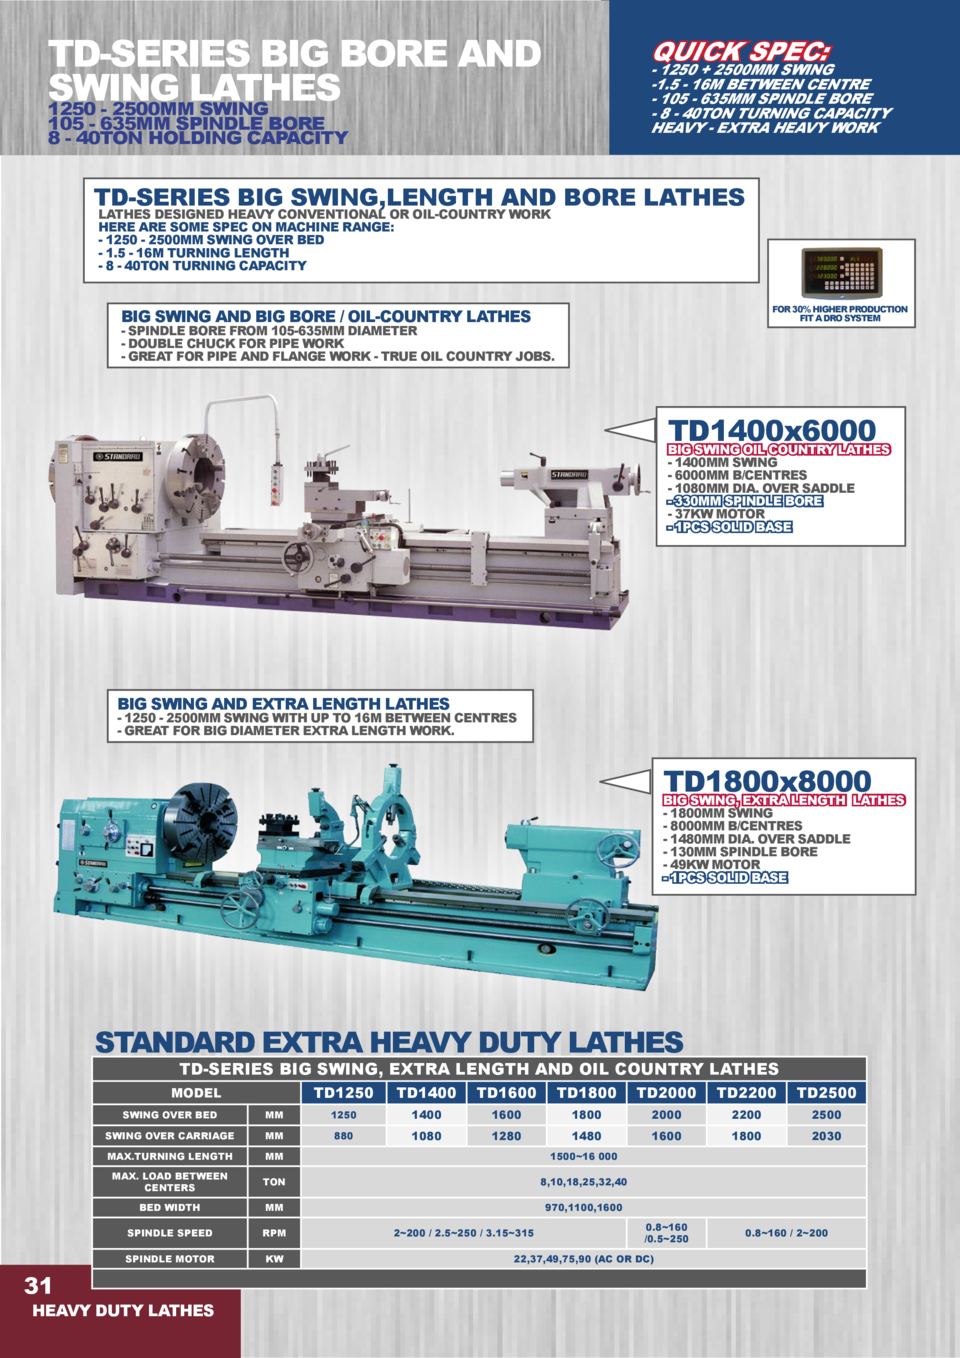 TD-SERIES BIG BORE AND SWING LATHES 1250 - 2500MM SWING  QUICK SPEC   - 1250   2500MM SWING -1.5 - 16M BETWEEN CENTRE - 10...